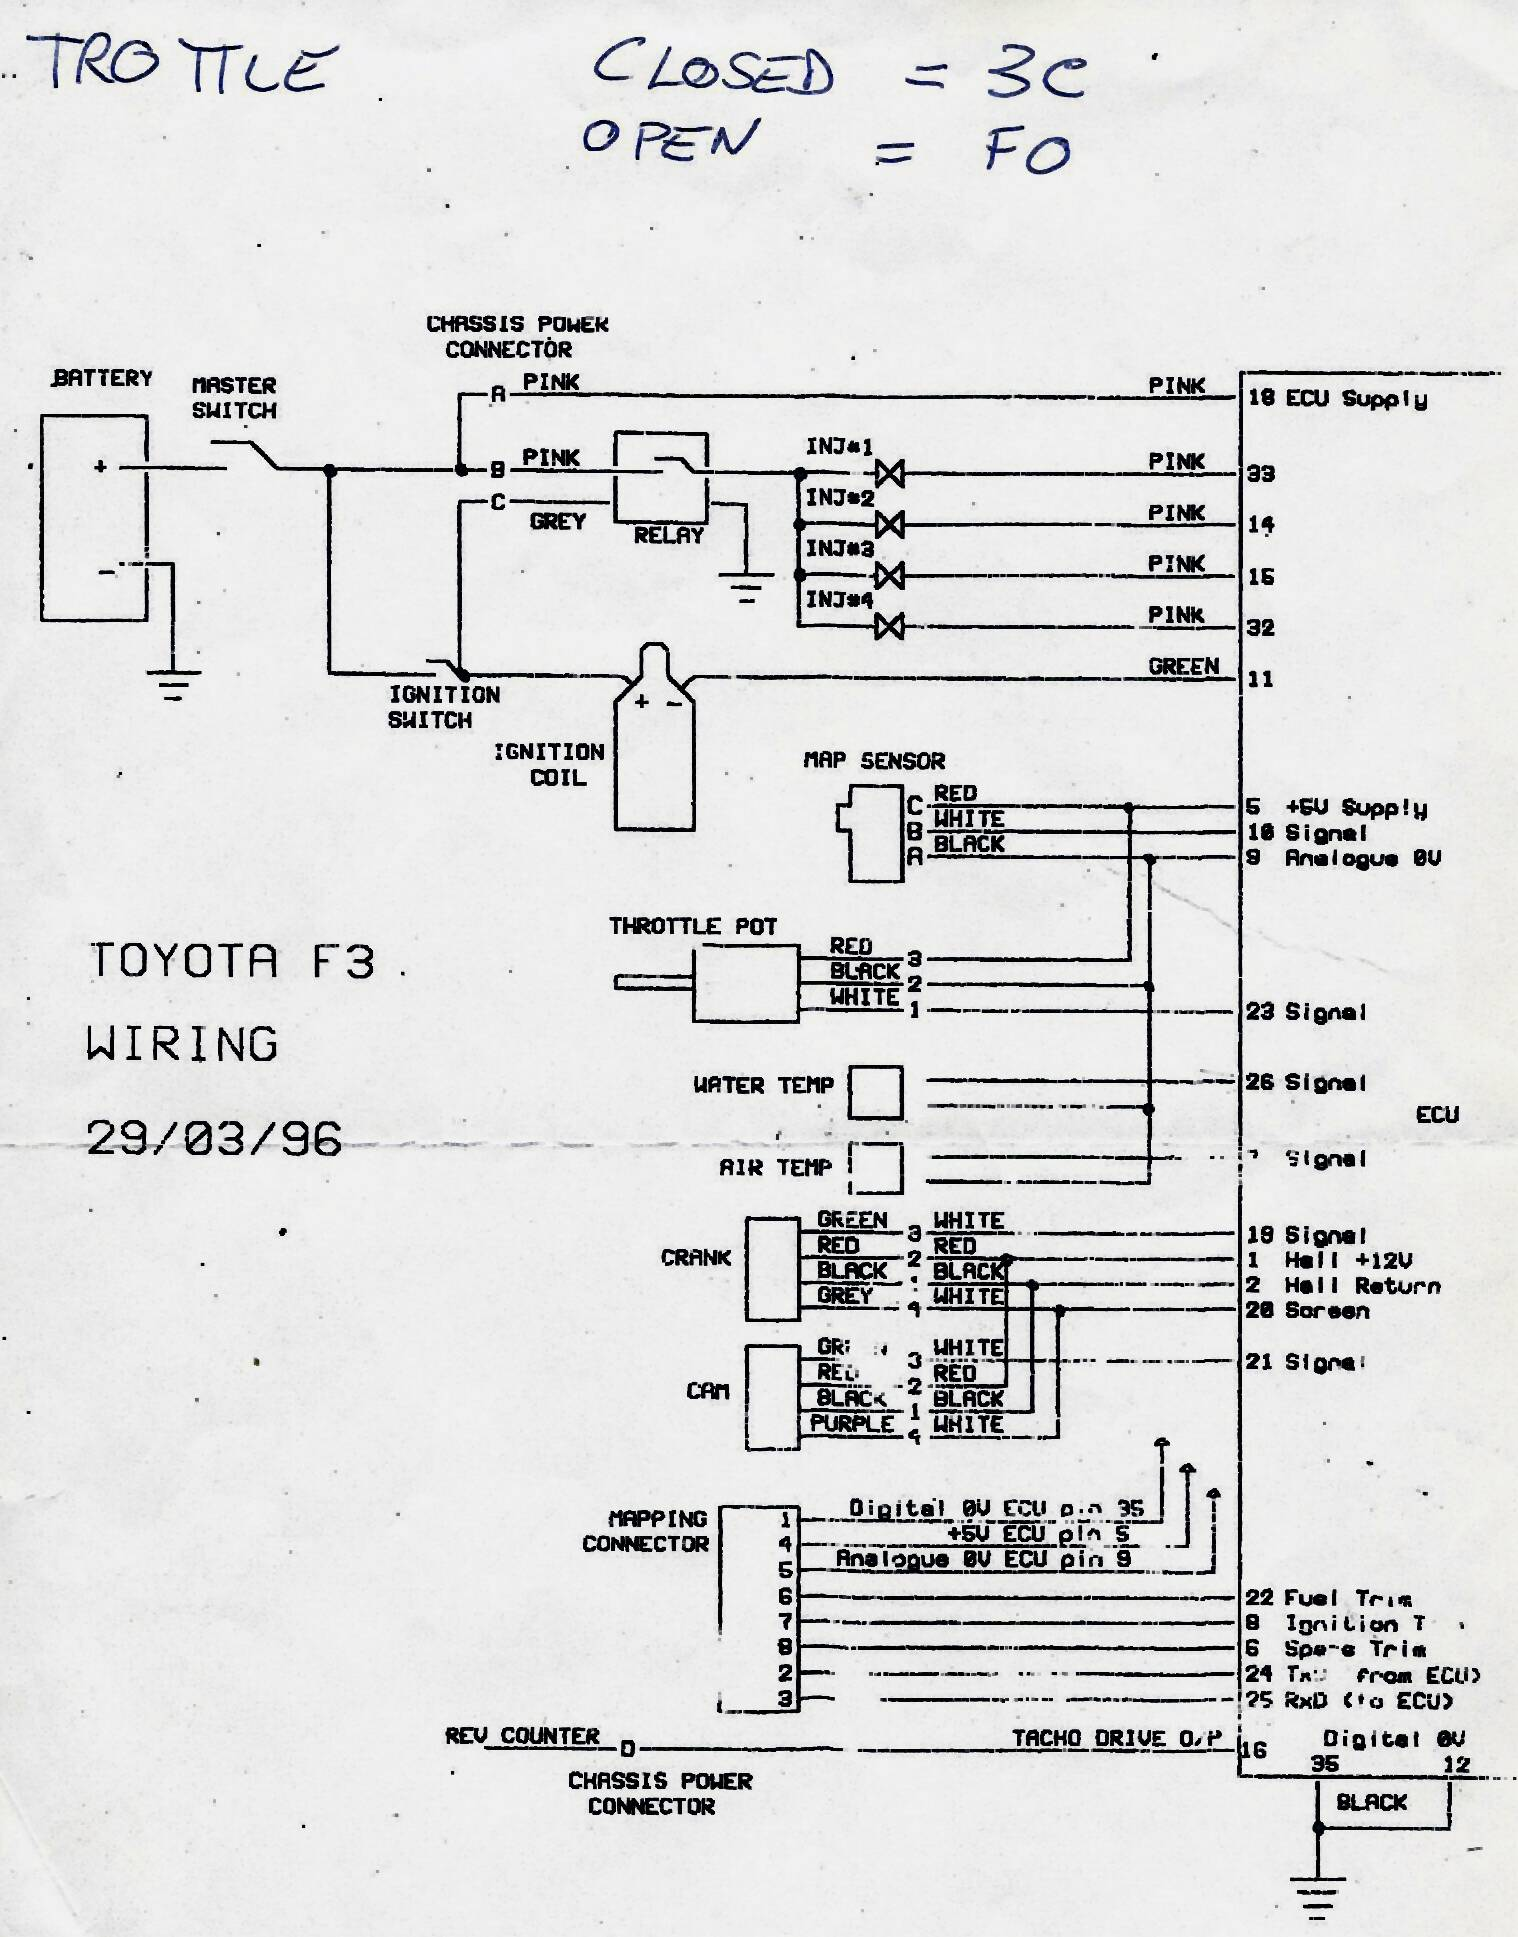 Wiring Diagram Toyota D4d $ Download-app.co